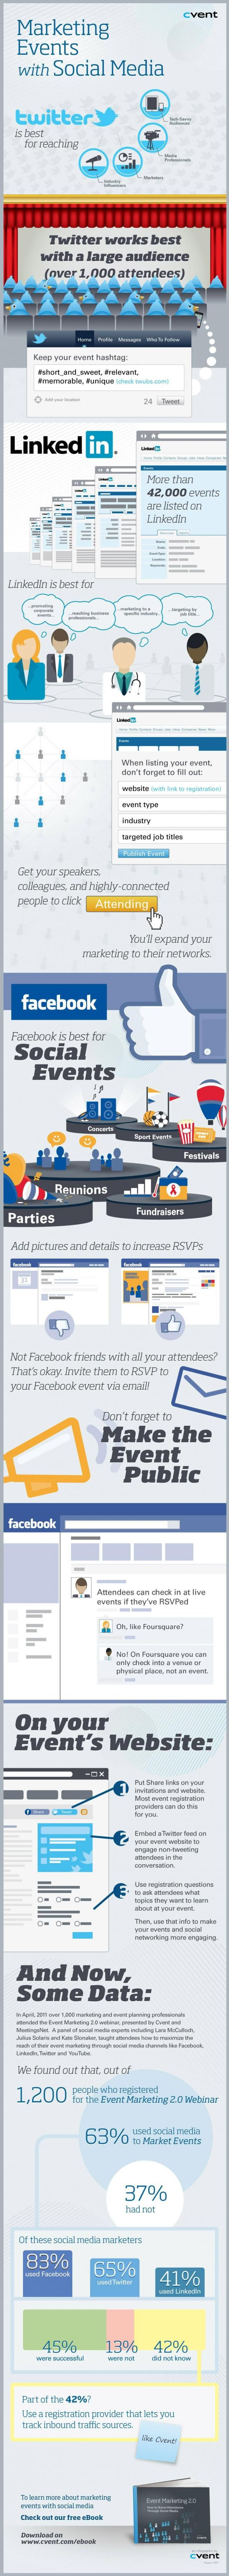 Marketing Events with #SocialMedia #infographic